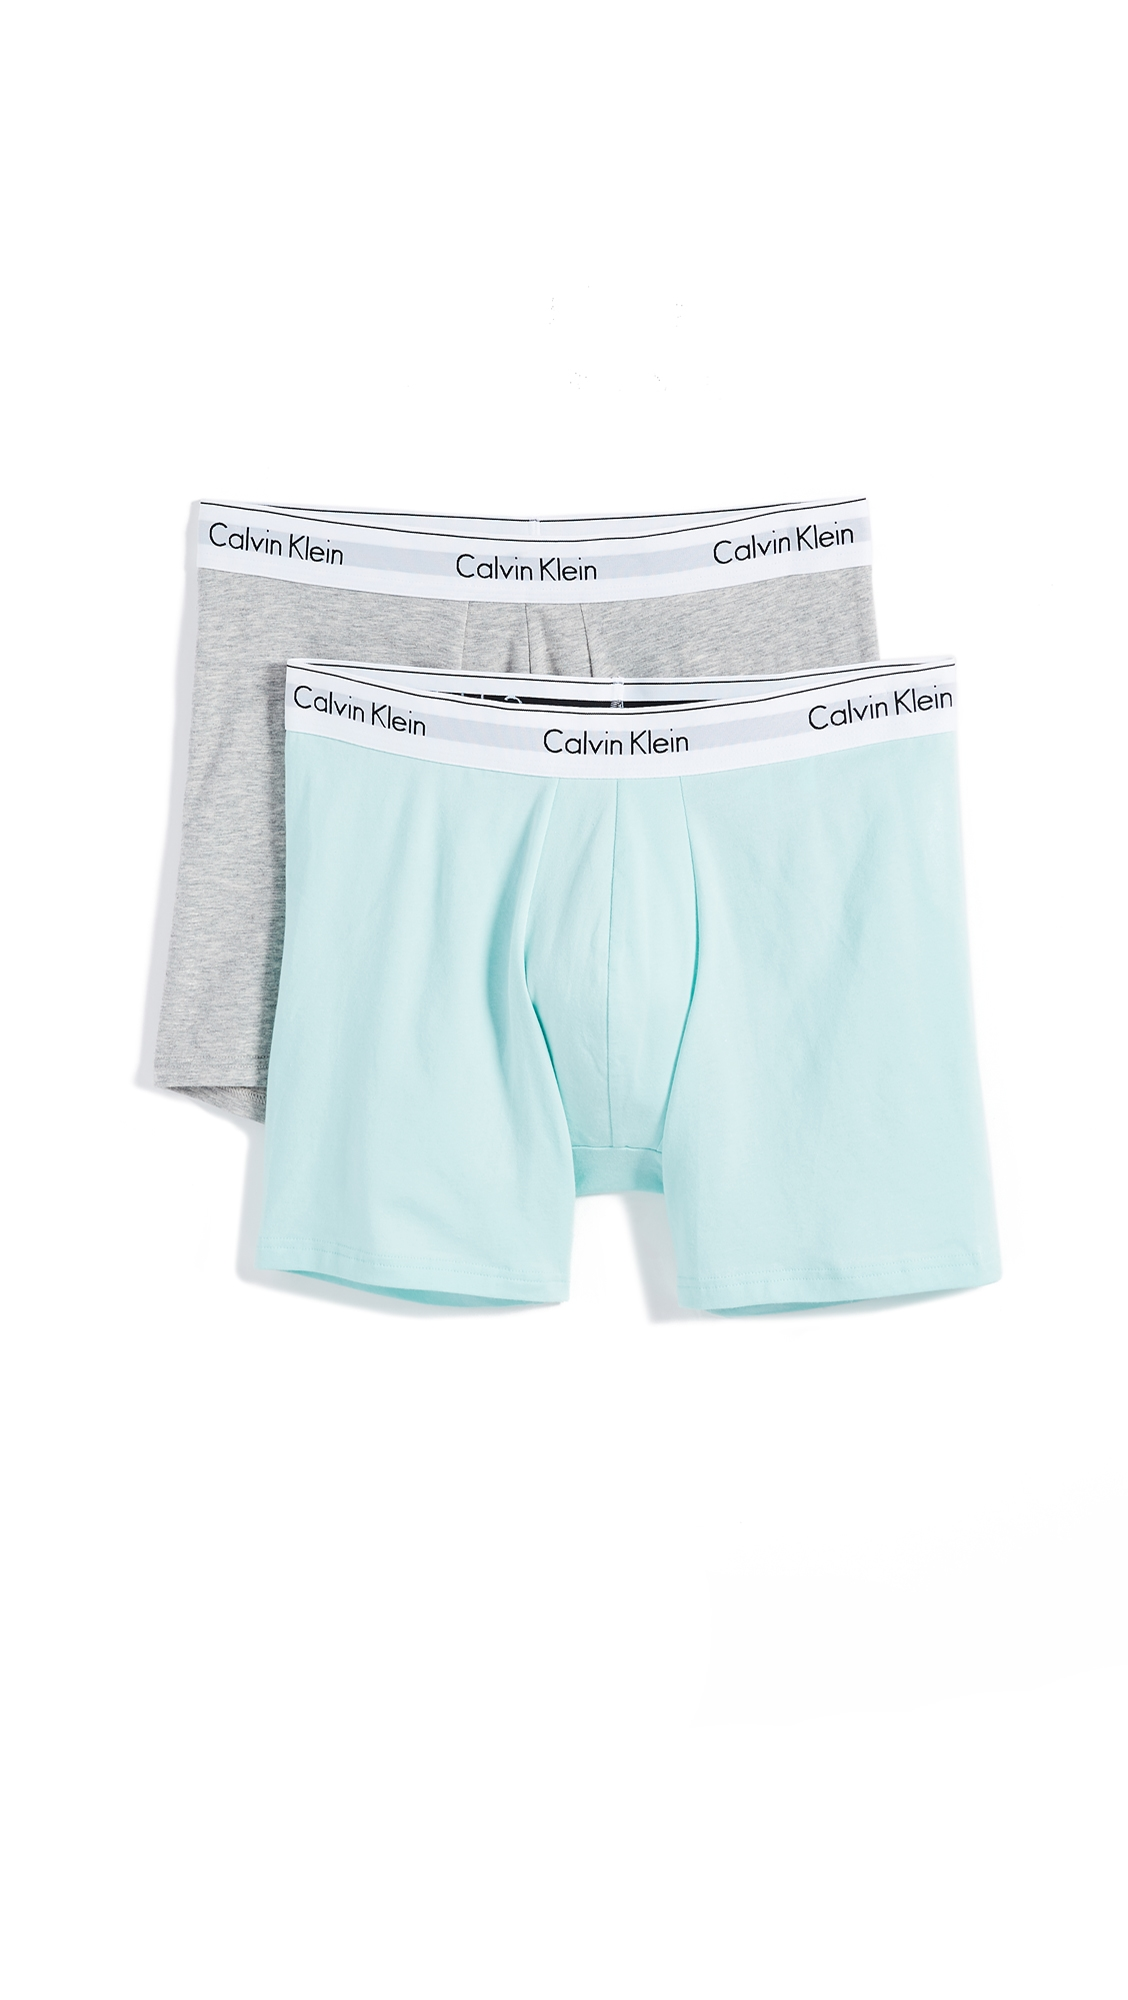 837afe097a Calvin Klein Underwear Modern Cotton Stretch 2 Pack Boxer Briefs In  Keppel Heather Grey